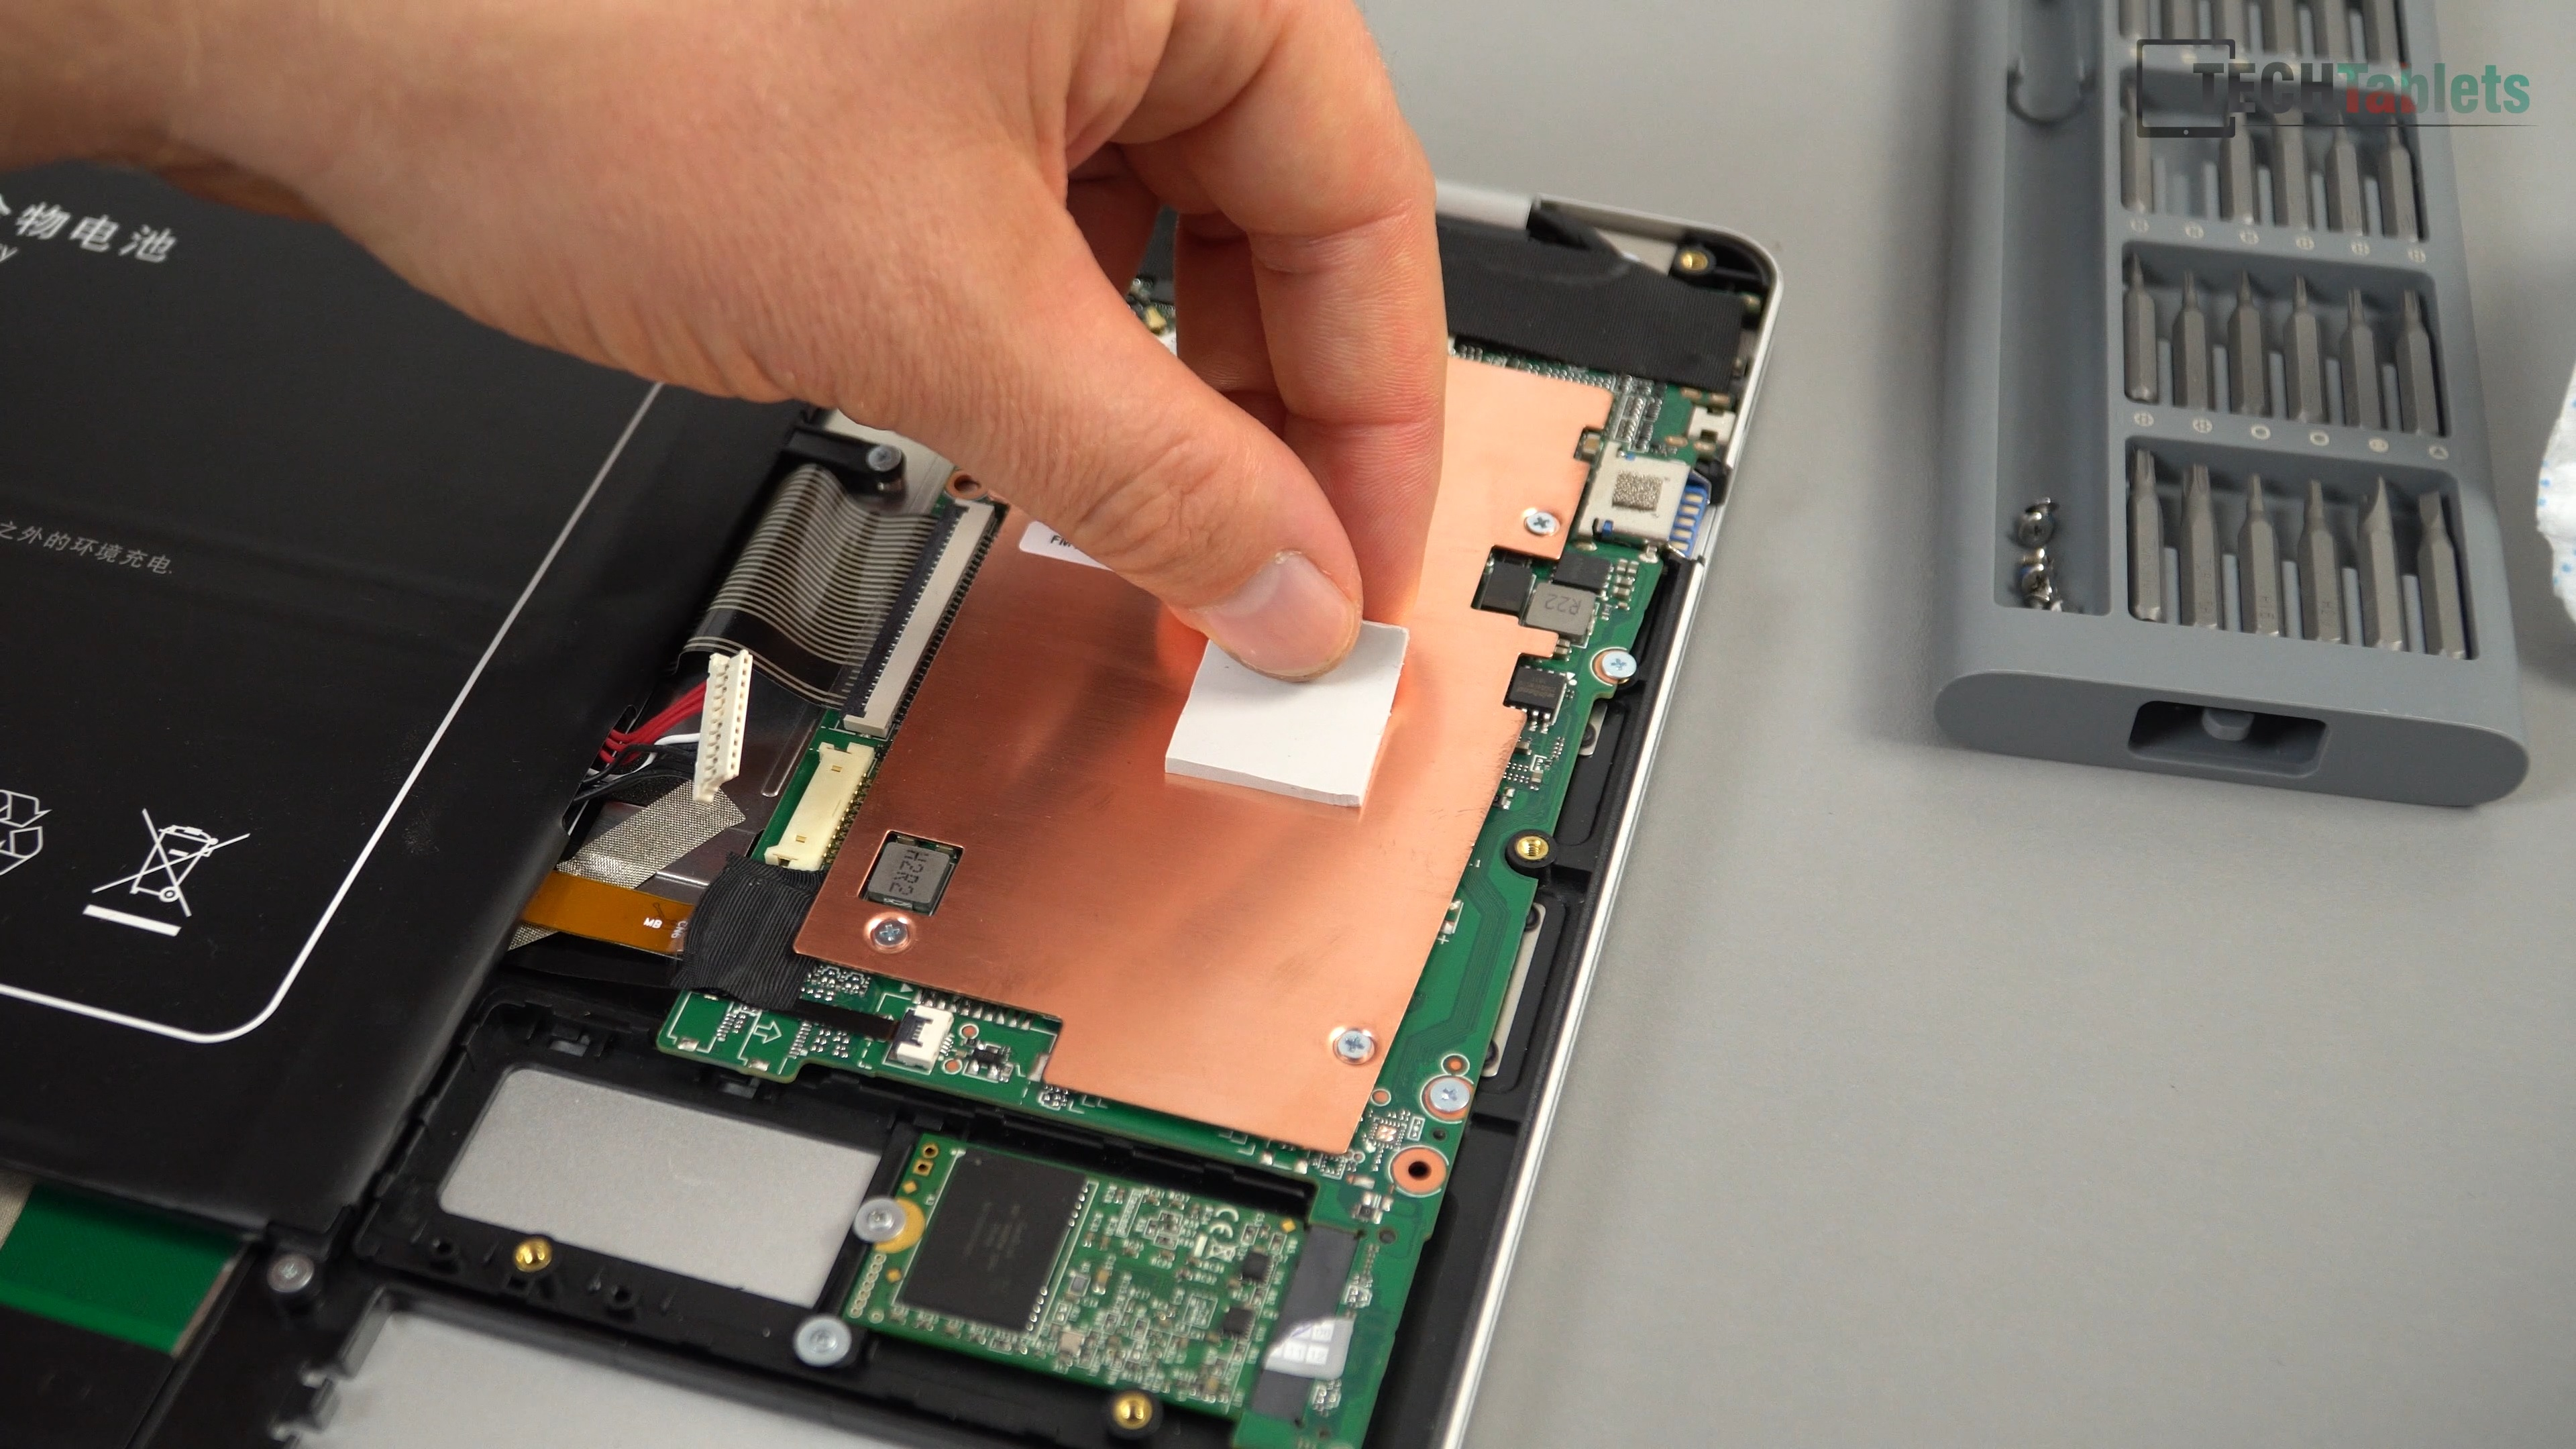 EZBook X4 - Fixing Thermals, Increasing FPS & Unlocking The Power